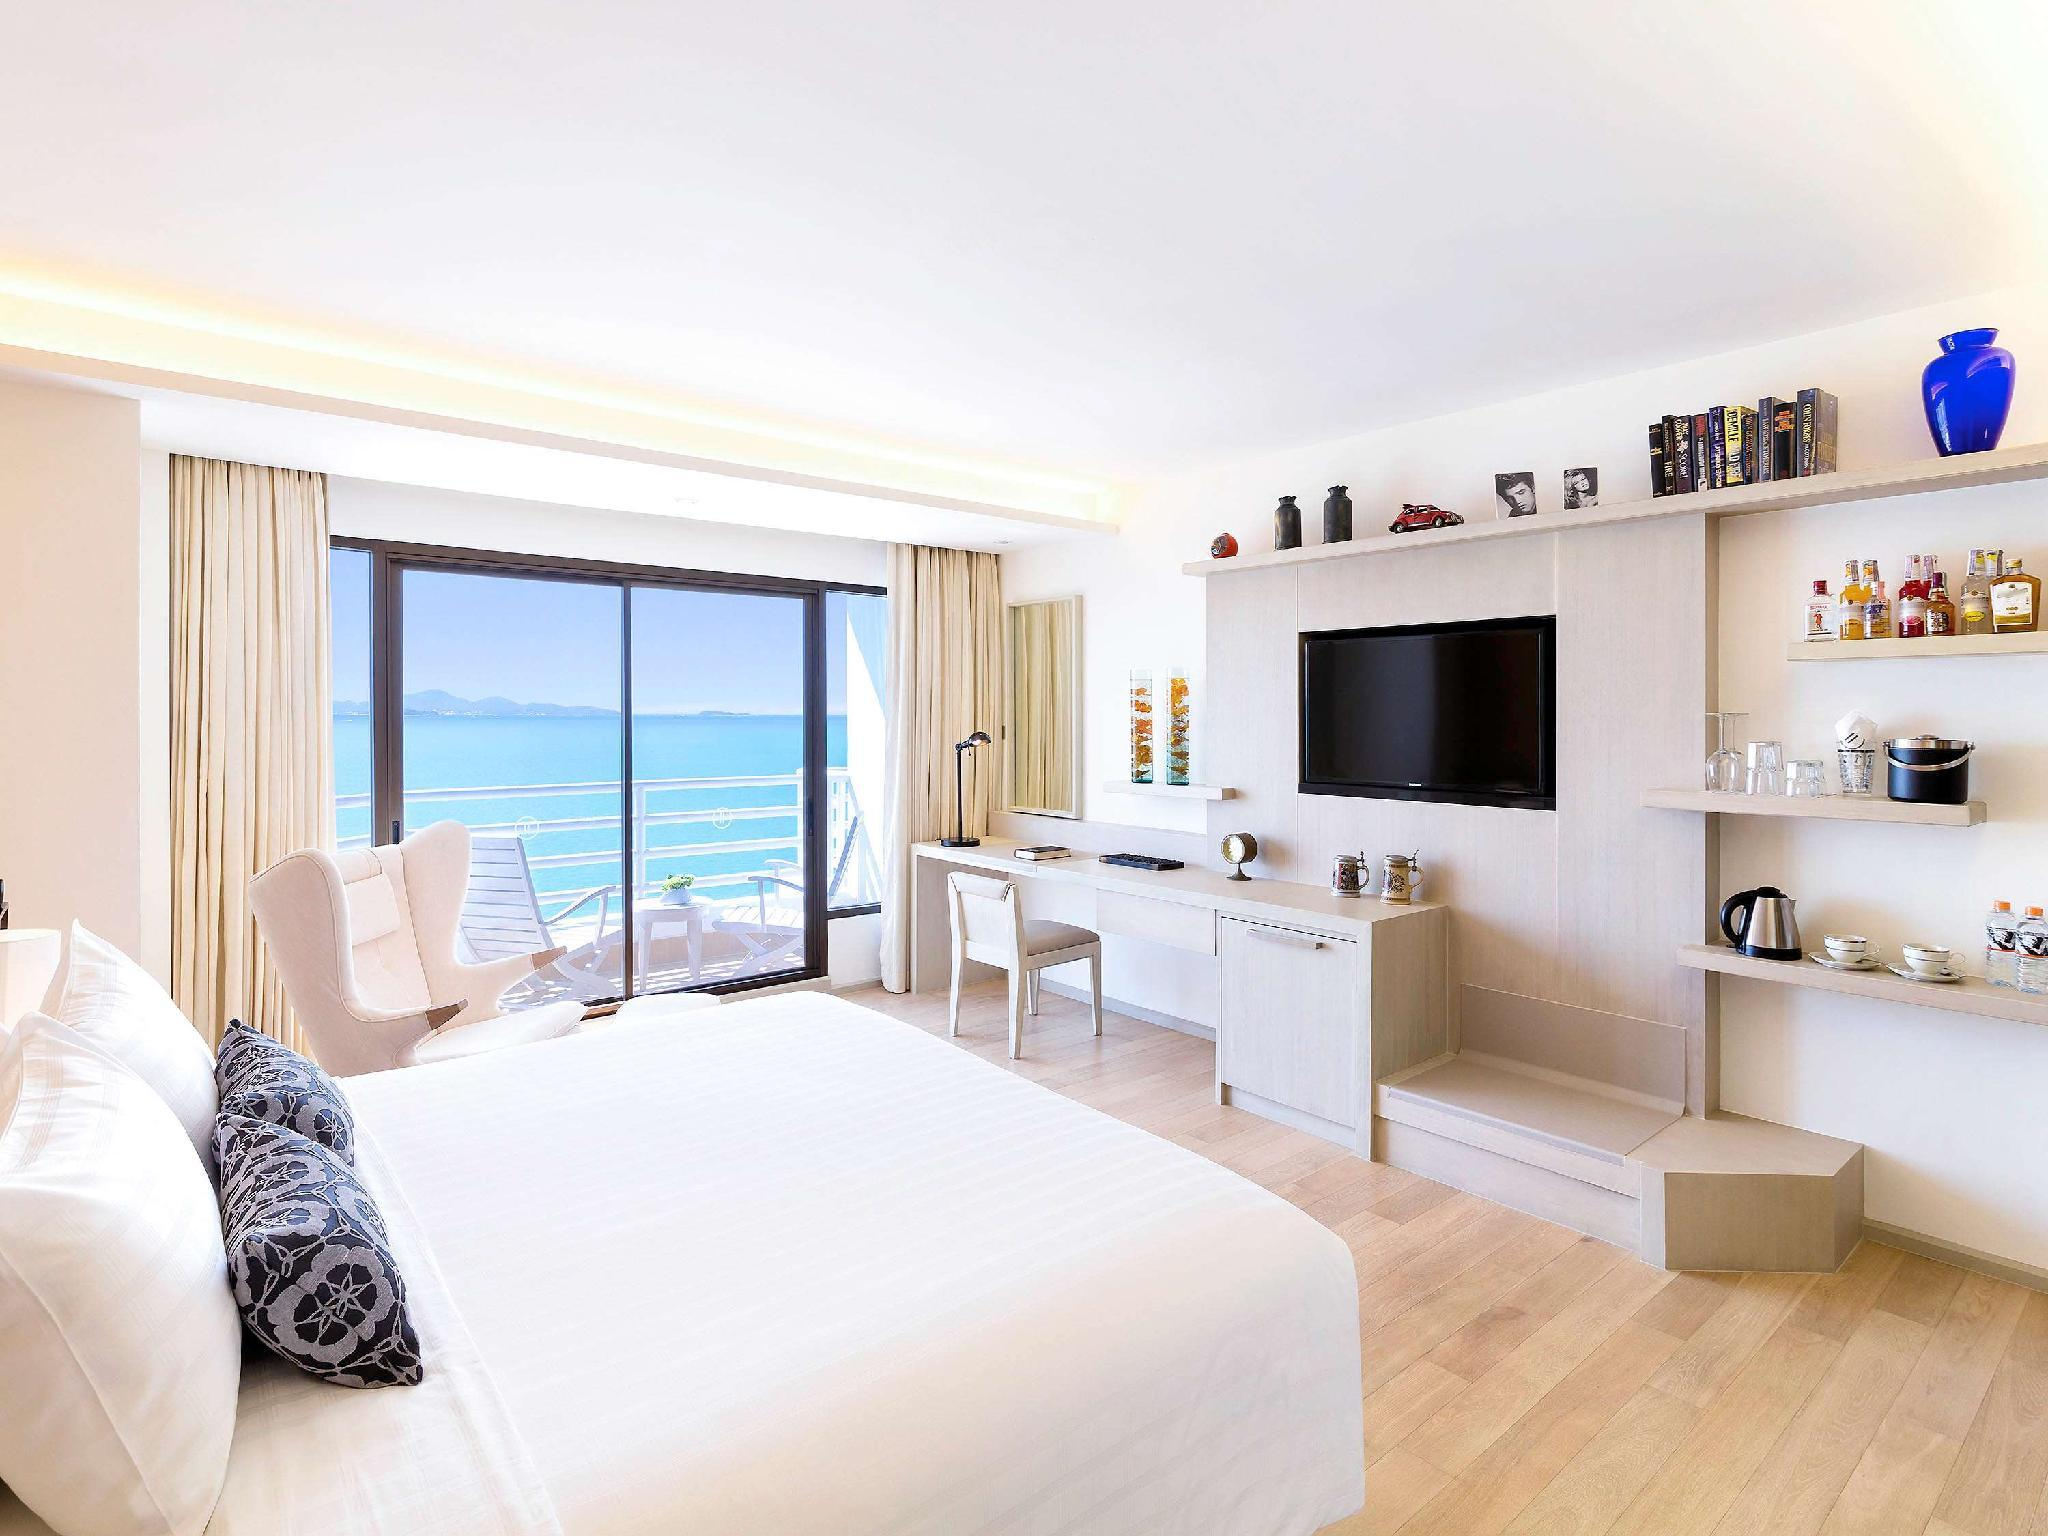 Executive Room, Lounge Access, 2 Single Size Beds, Full Sea View